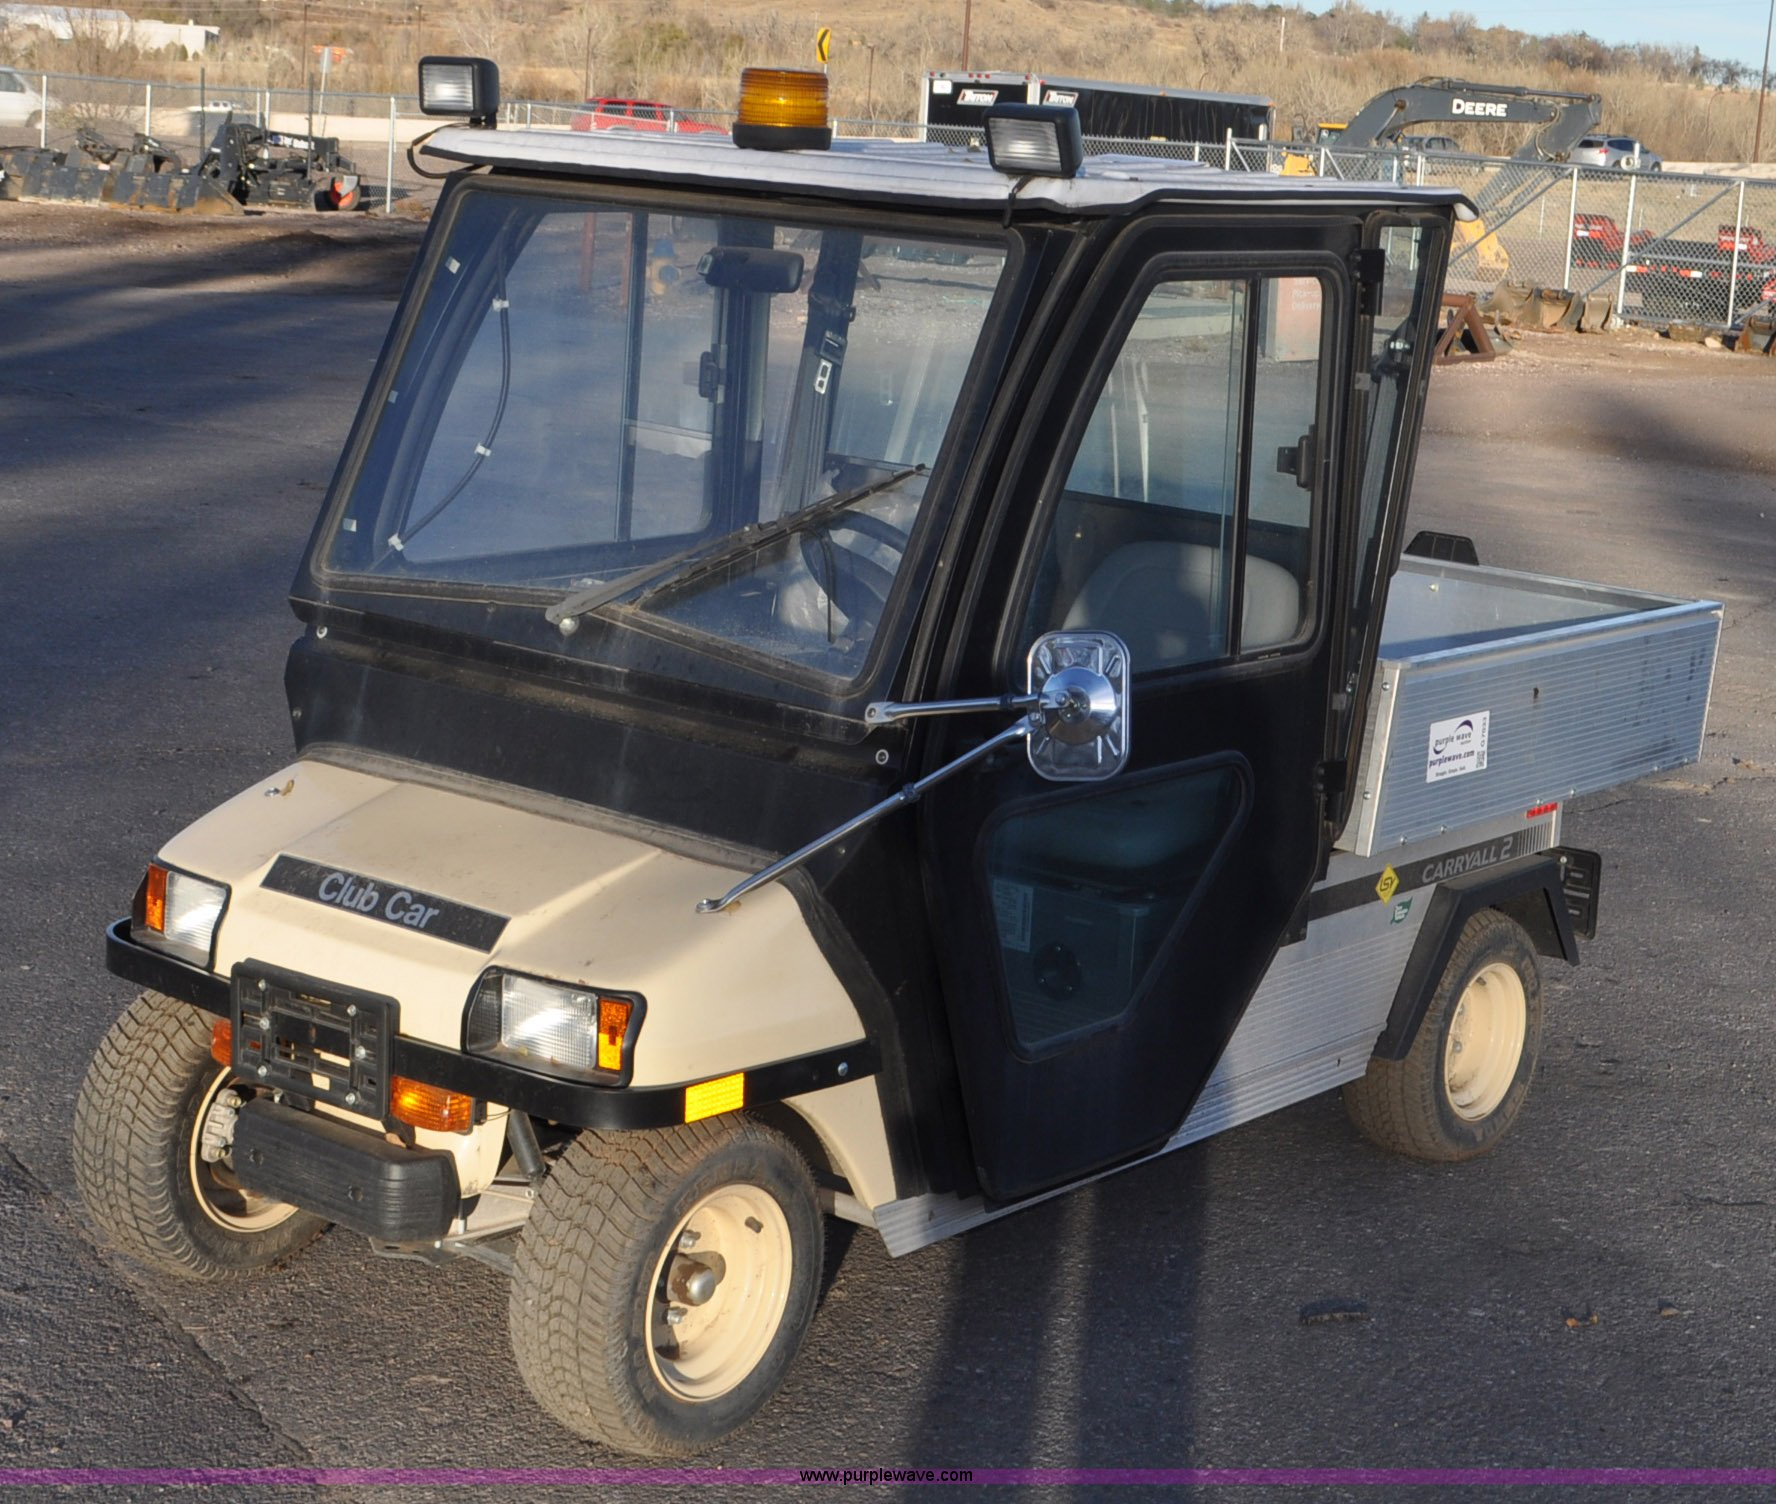 2012 Club Car Carryall 2 Utility Vehicle Item G7033